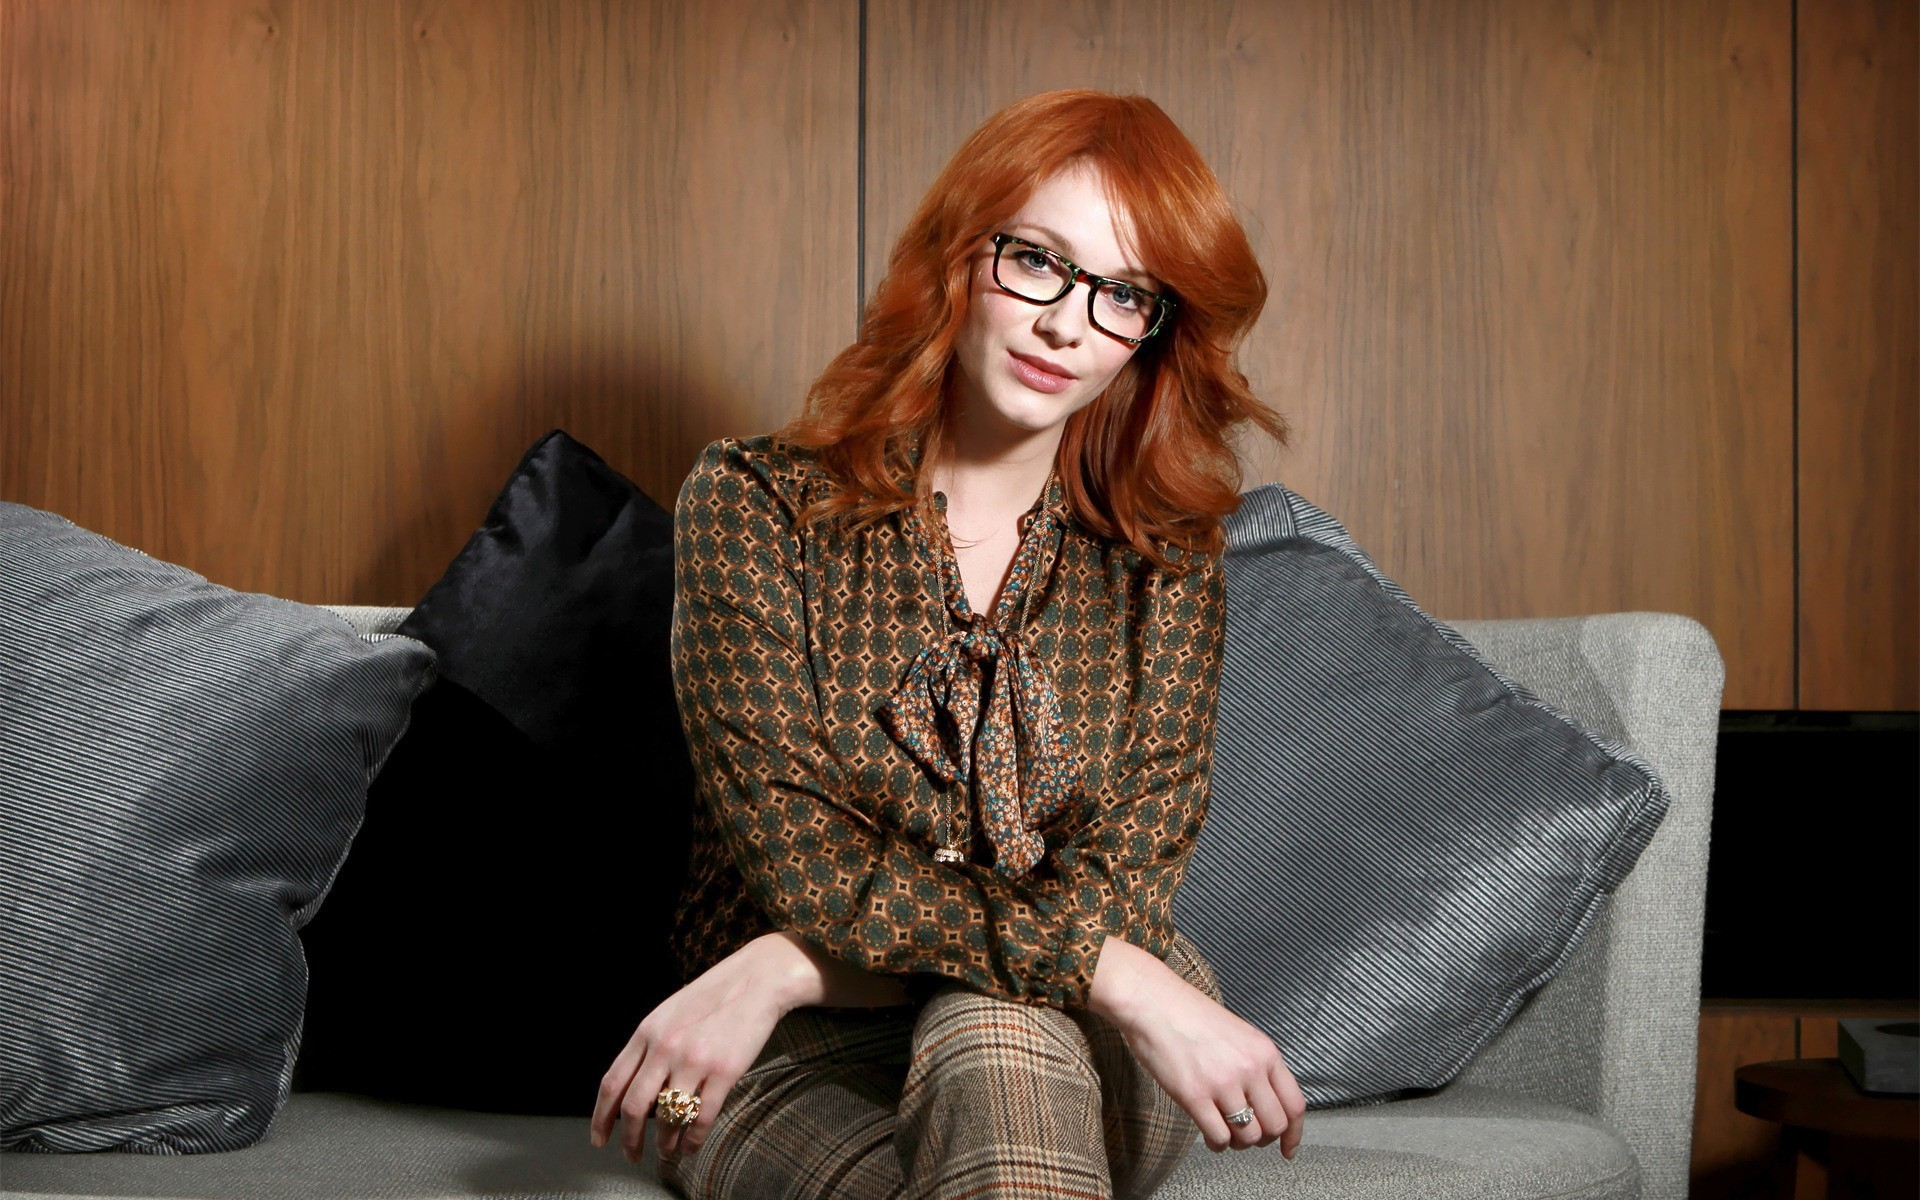 Pictures Of Christina Hendricks